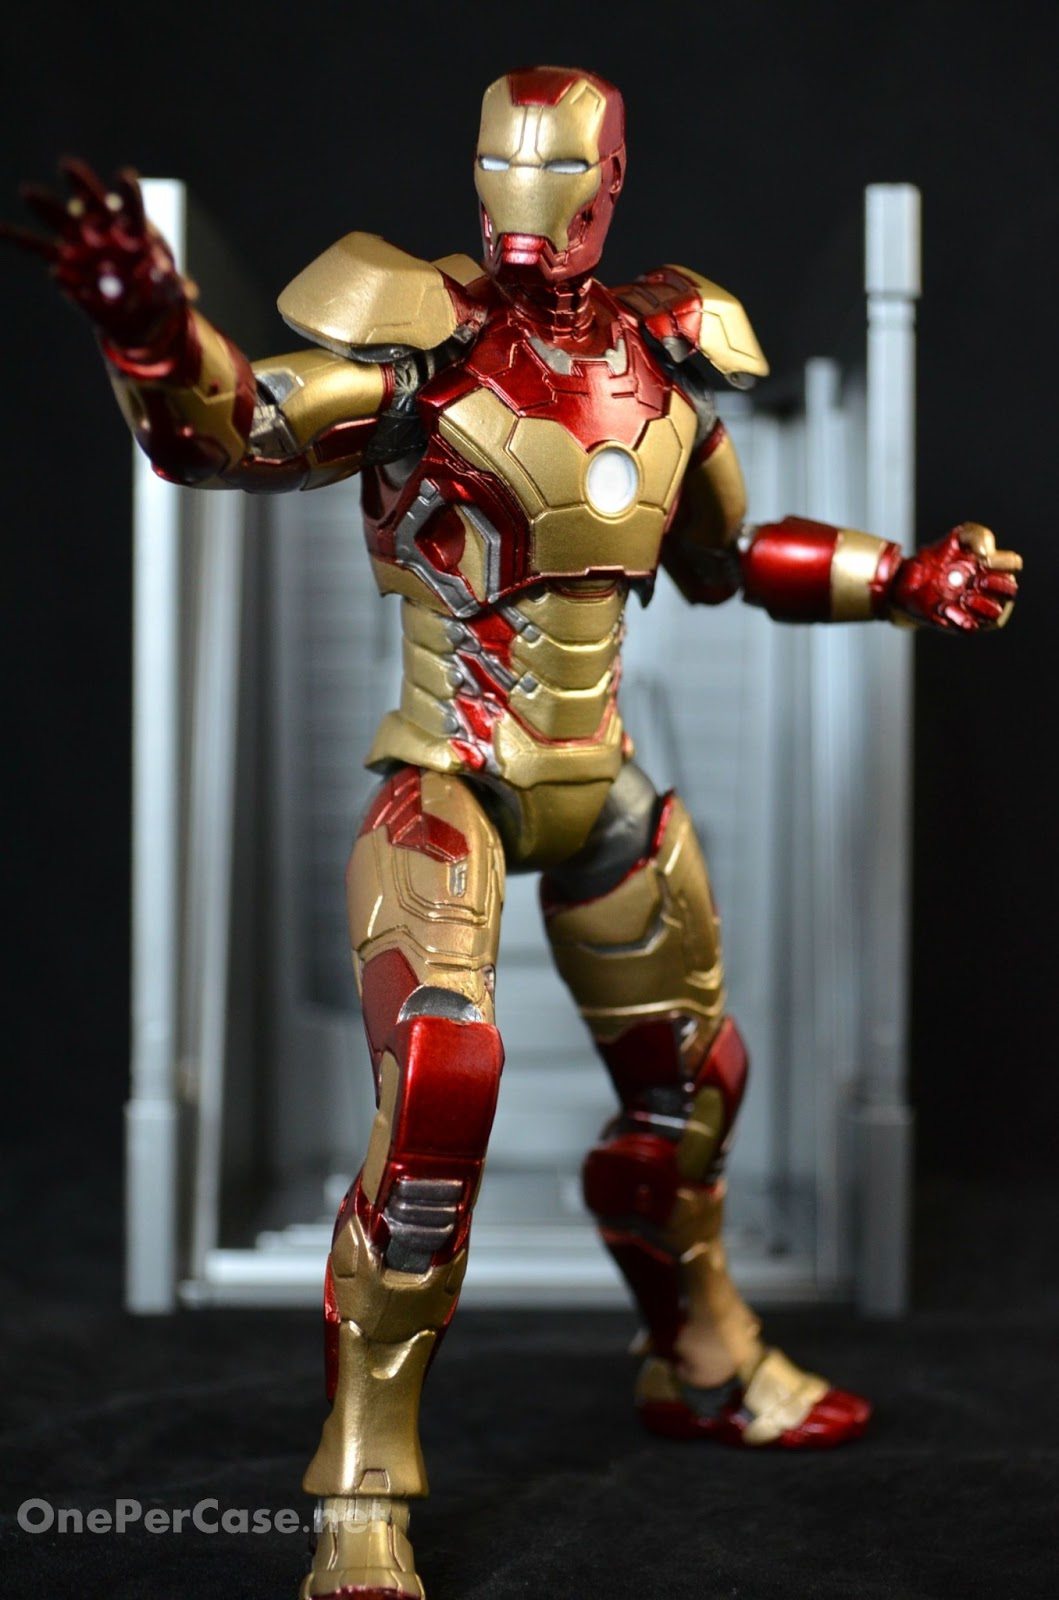 One Per Case: Marvel Select Iron Man 3 - Mark XLII Armor